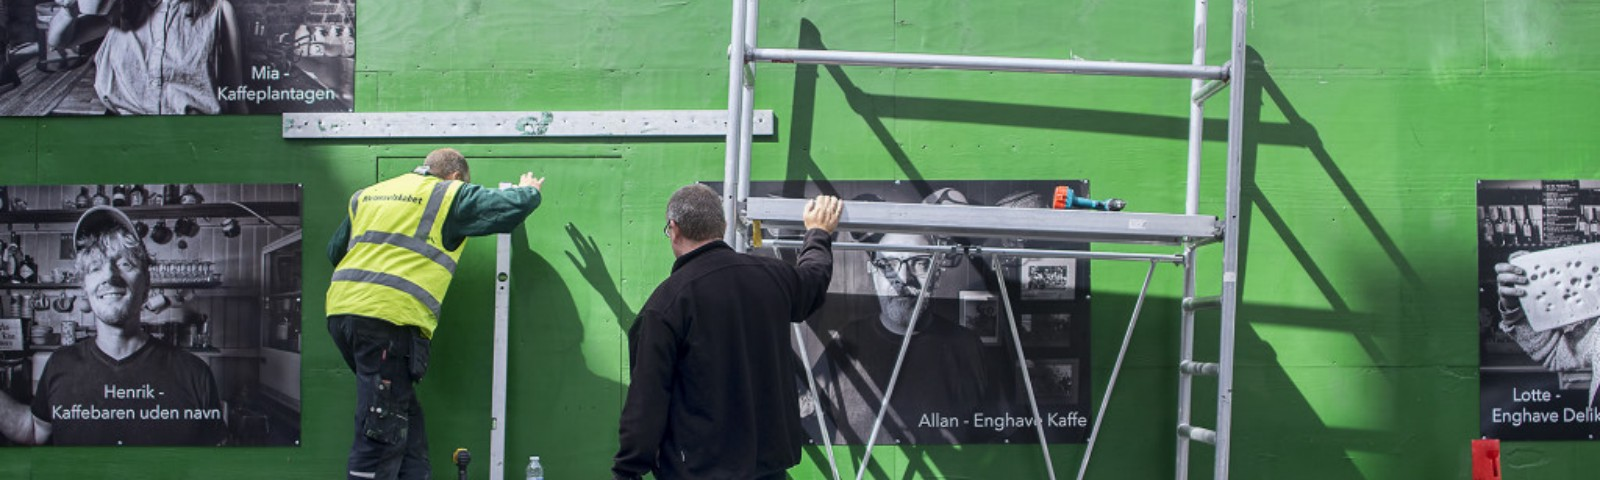 Mounting of the pictures, The Enghave Portraits Project, Robert Thomason, madaboutcopenhagen